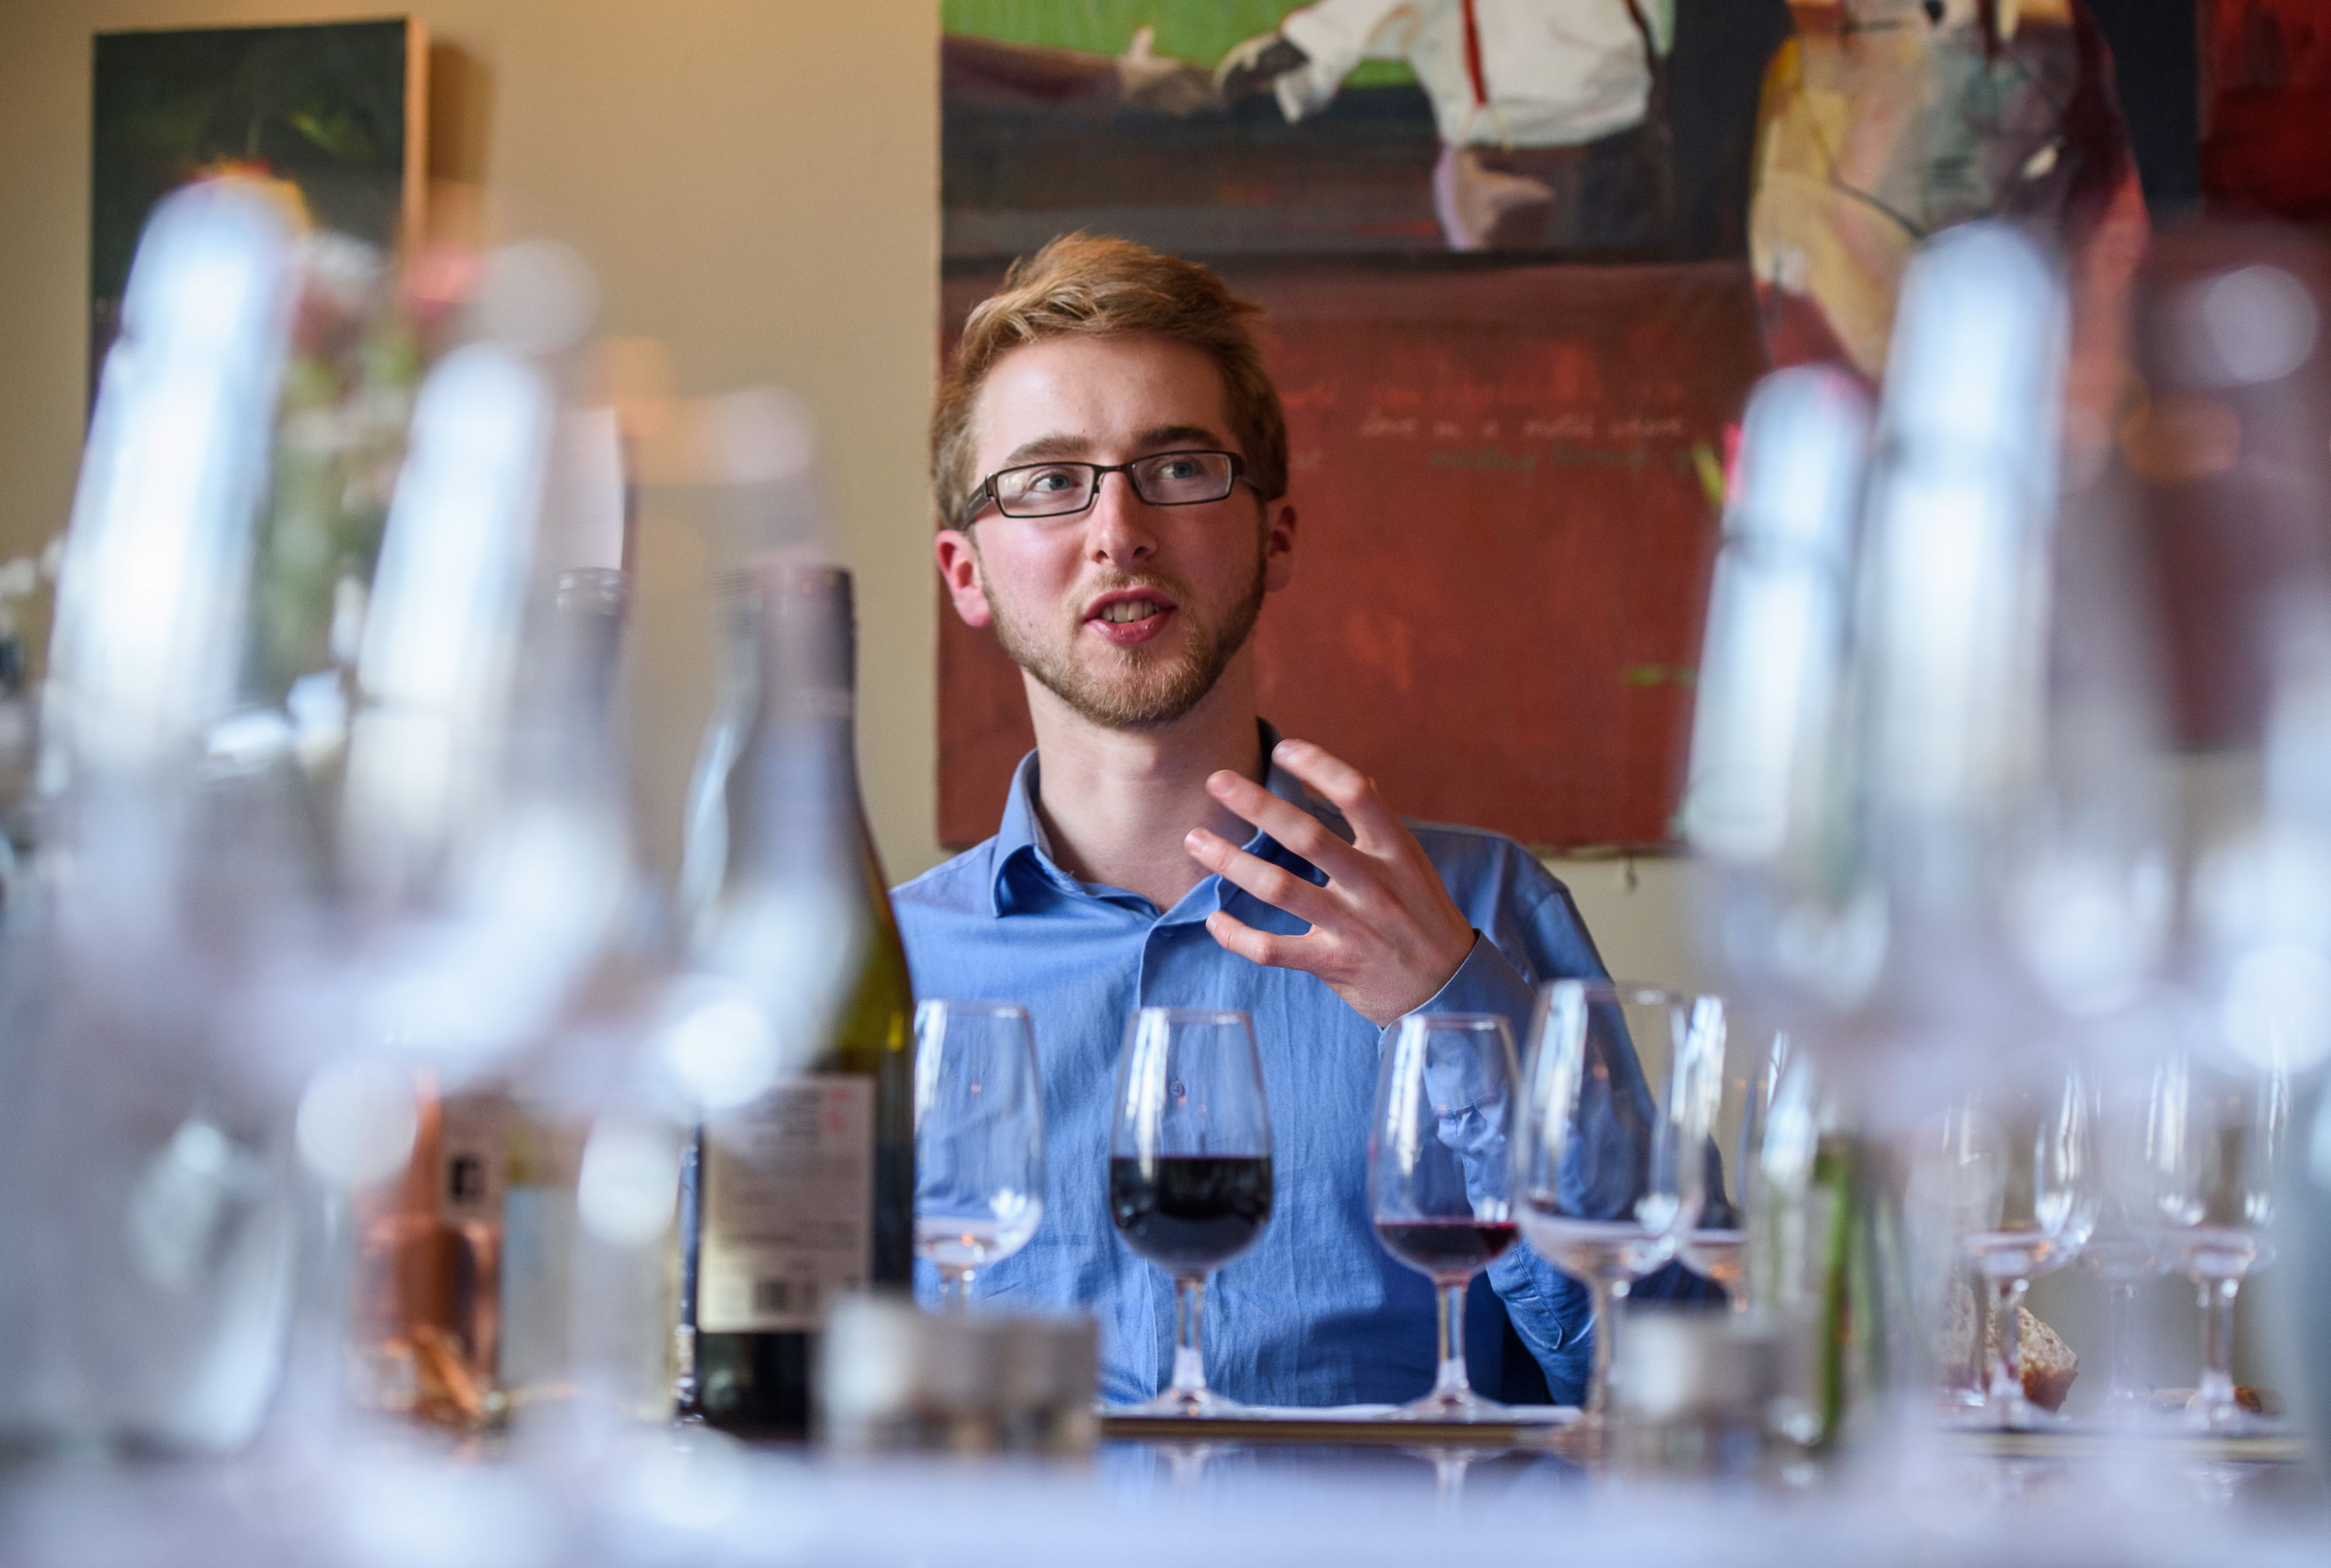 Expert host Ben Franks discusses wine for Novel Wines